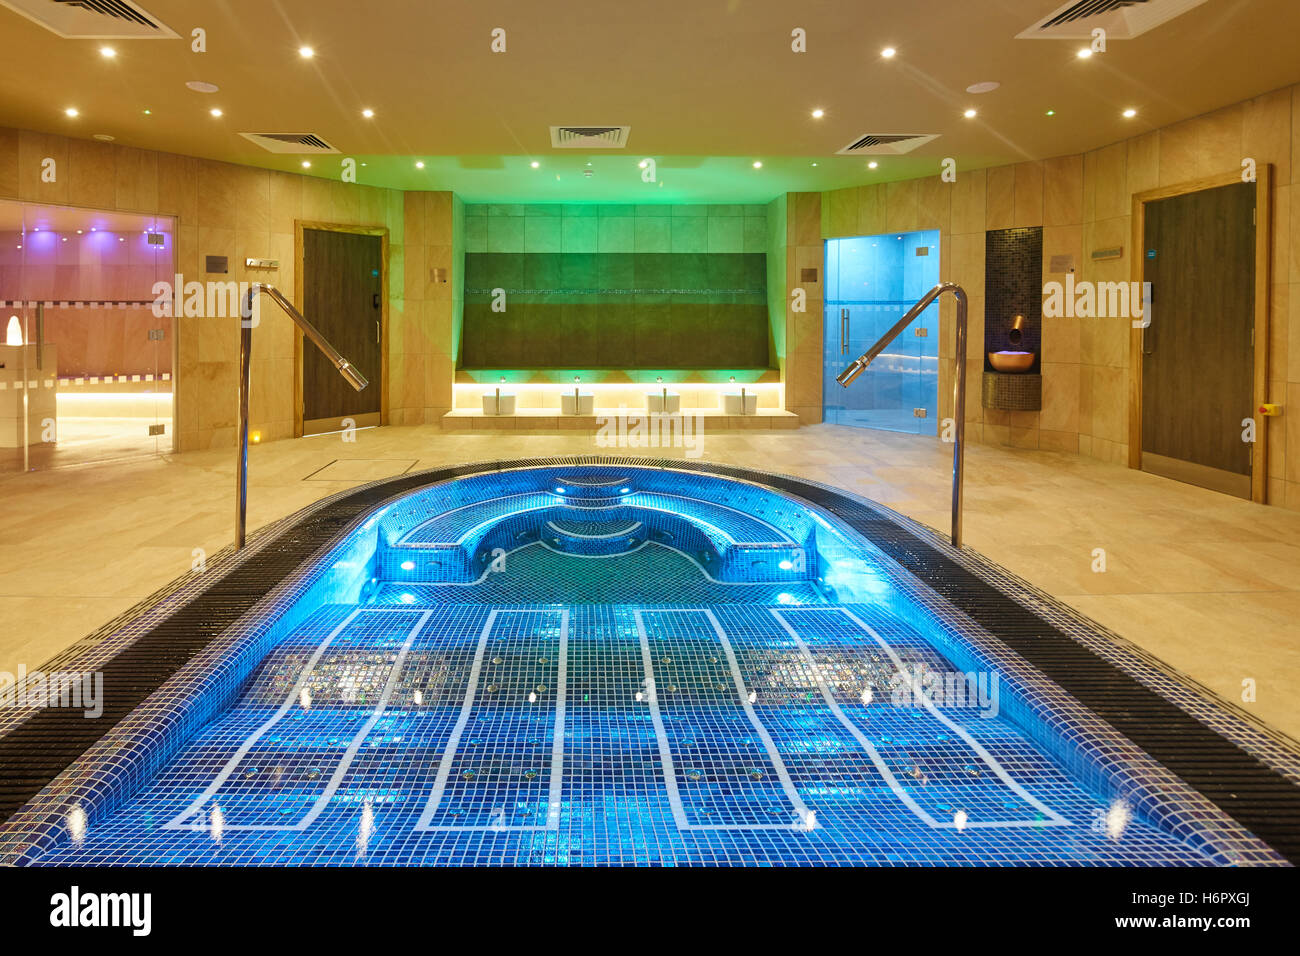 Spa Pool interior modern posh clean   Inside Spa Nelson sauna space Jacuzzi private  council Quality deluxe luxury - Stock Image